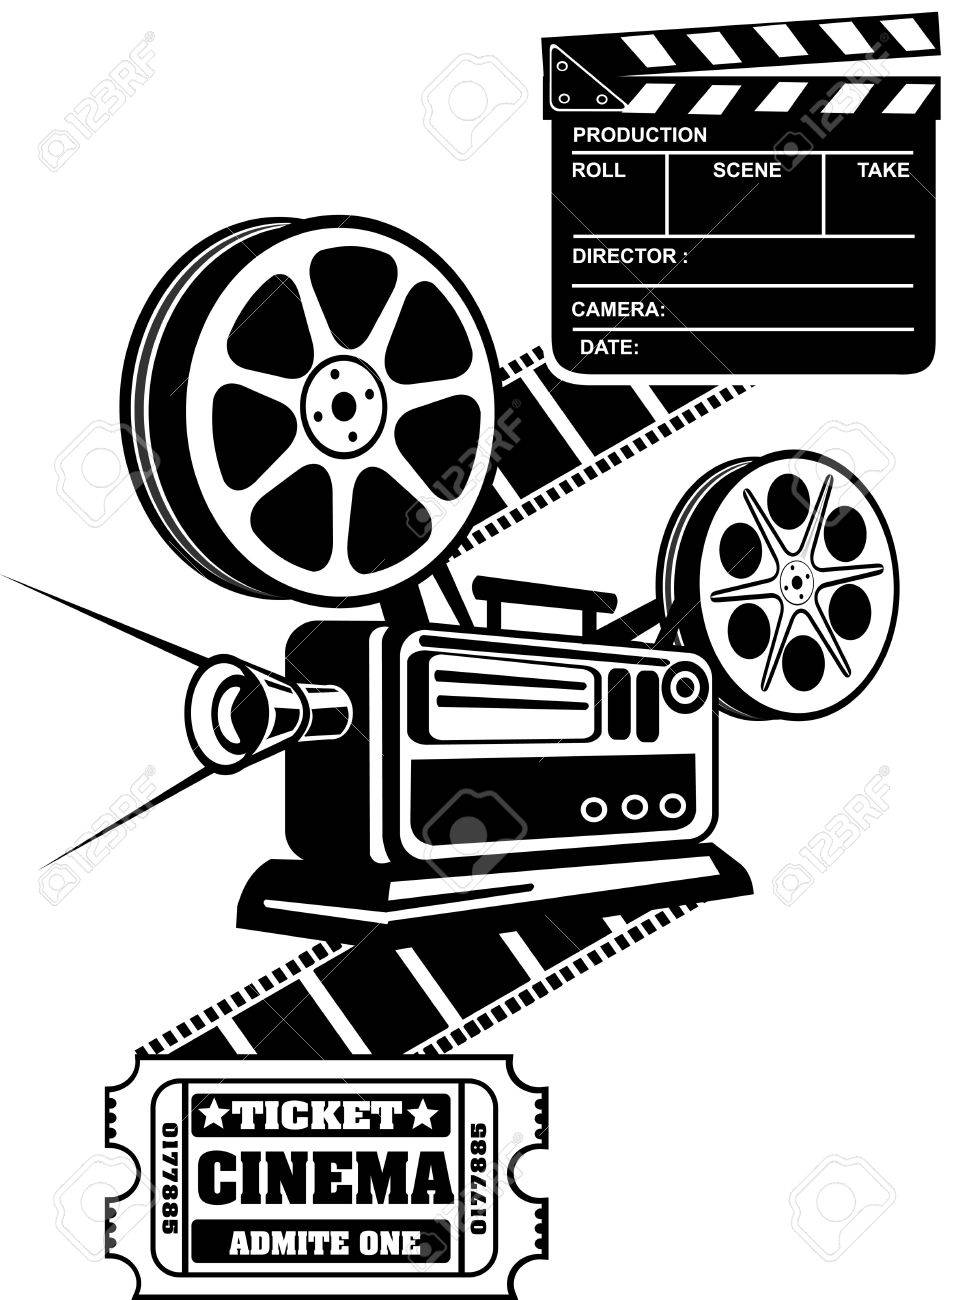 Film reels and clapper board cinema ticket royalty free cliparts film reels and clapper board cinema ticket stock vector 49651036 thecheapjerseys Choice Image